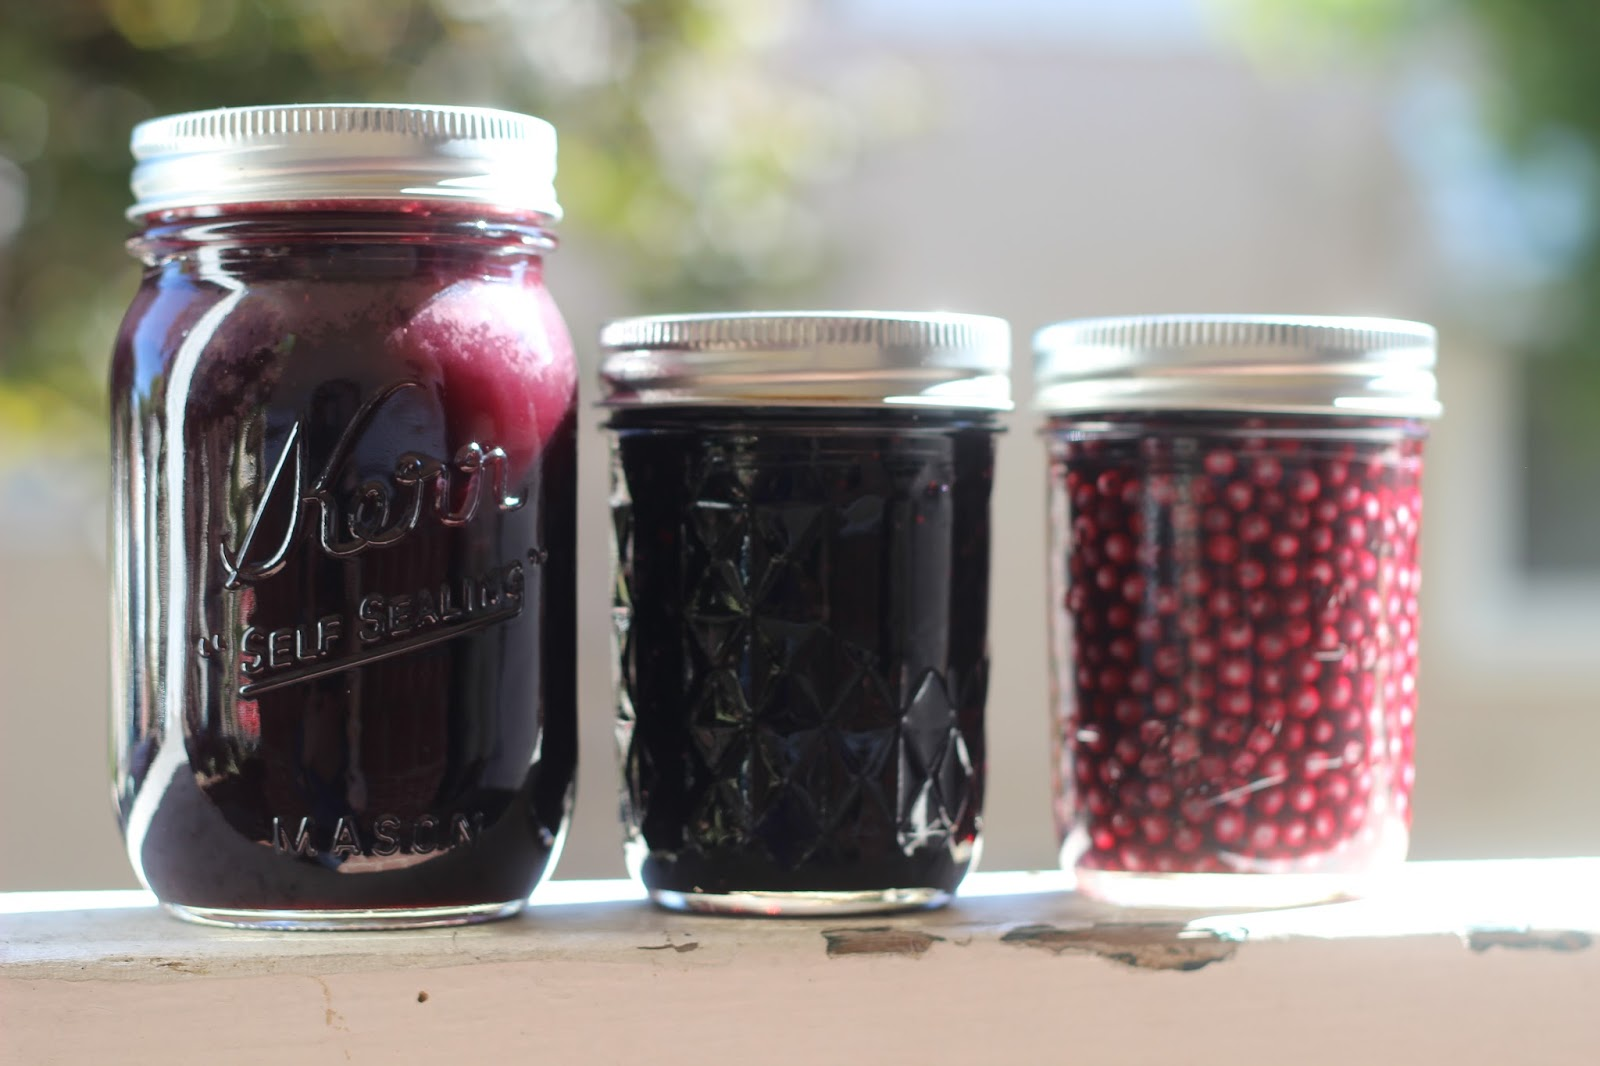 Food and Hearth: Three ways with elderberries